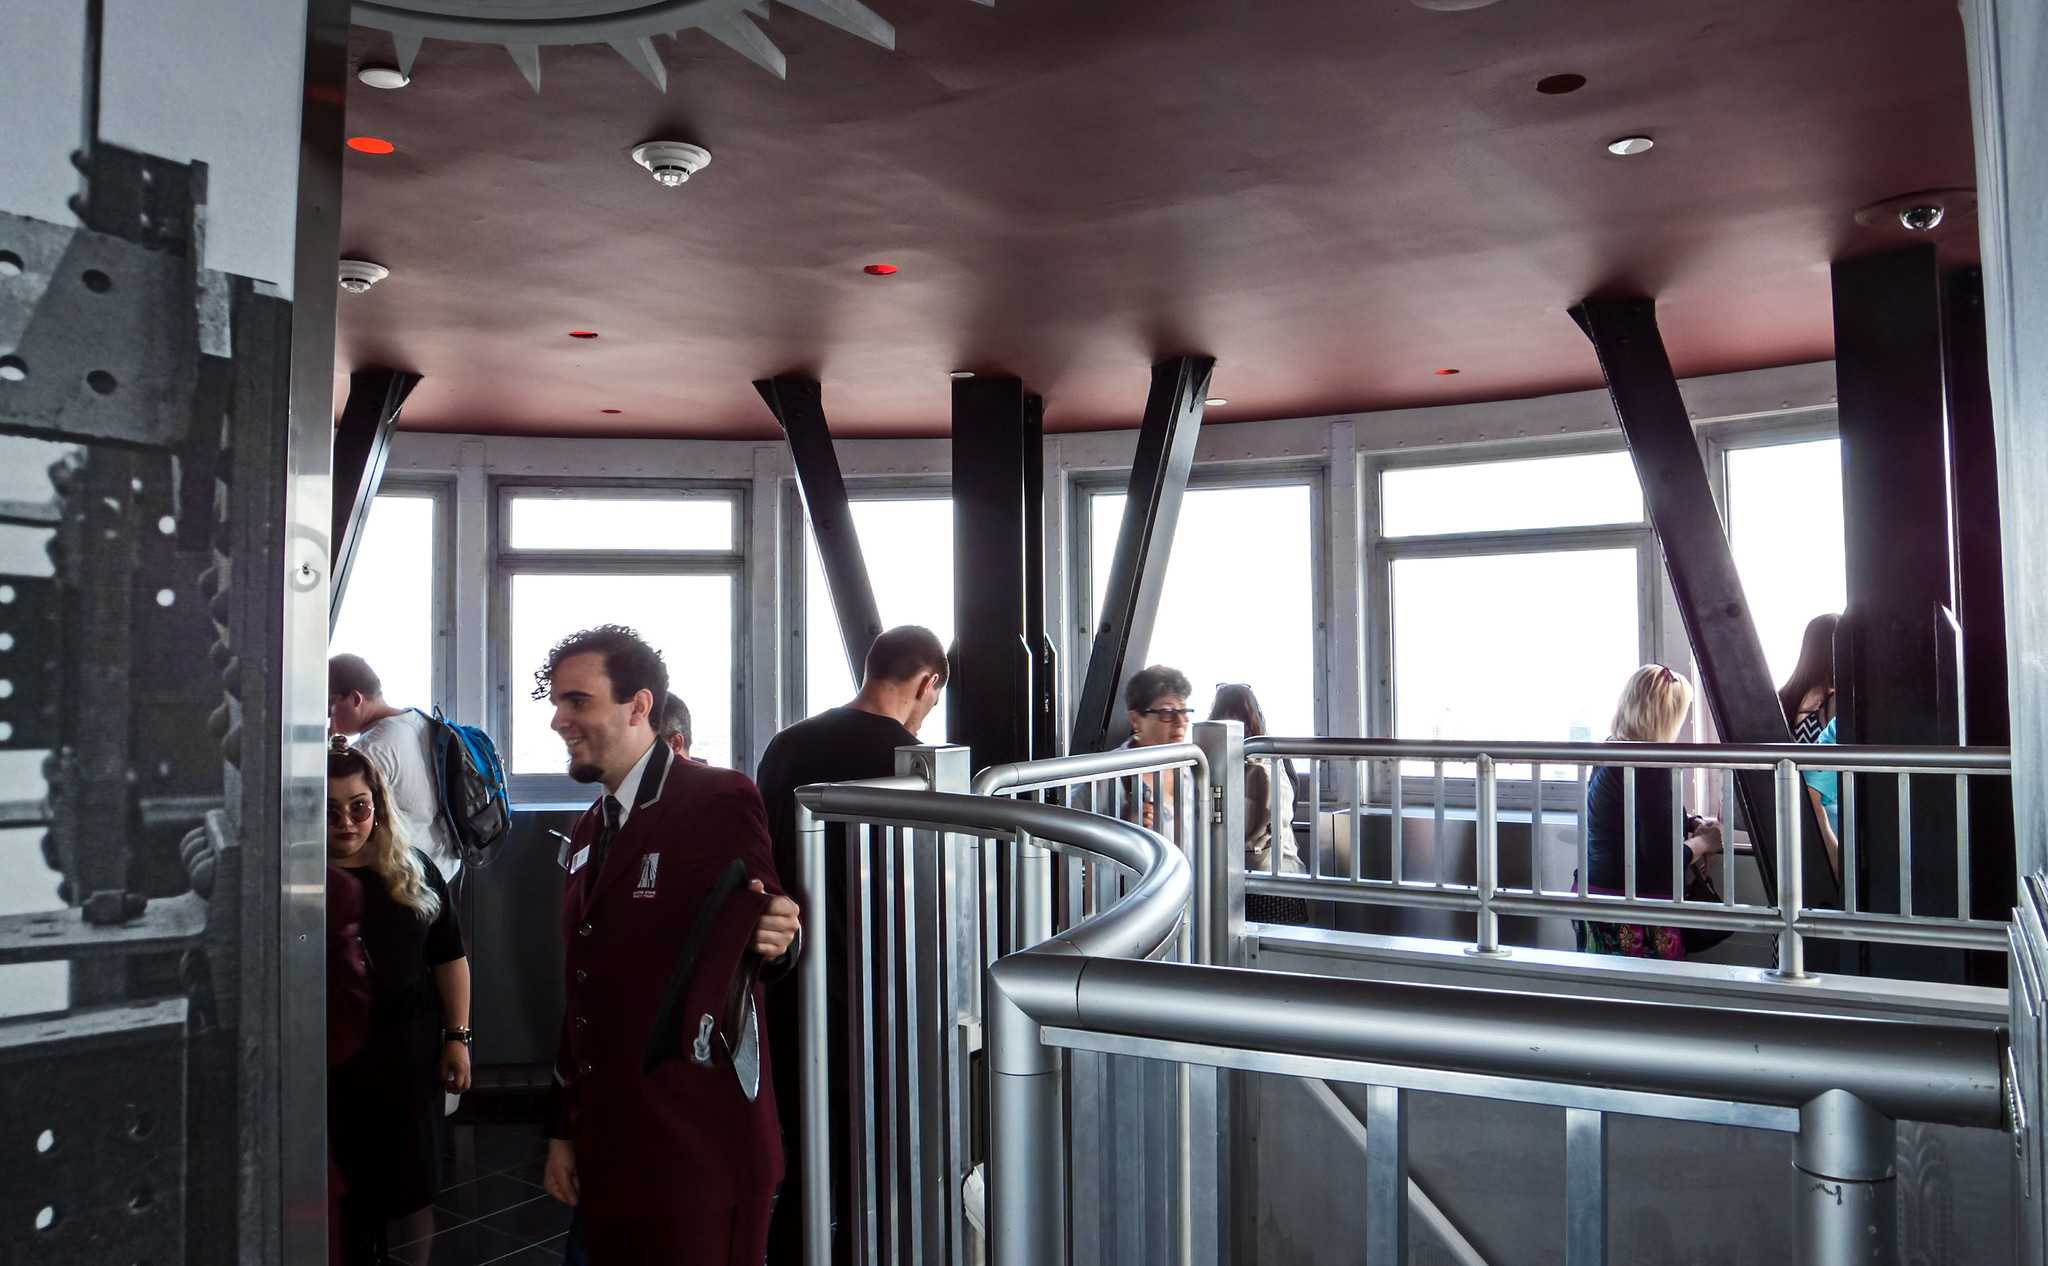 People in an observation deck